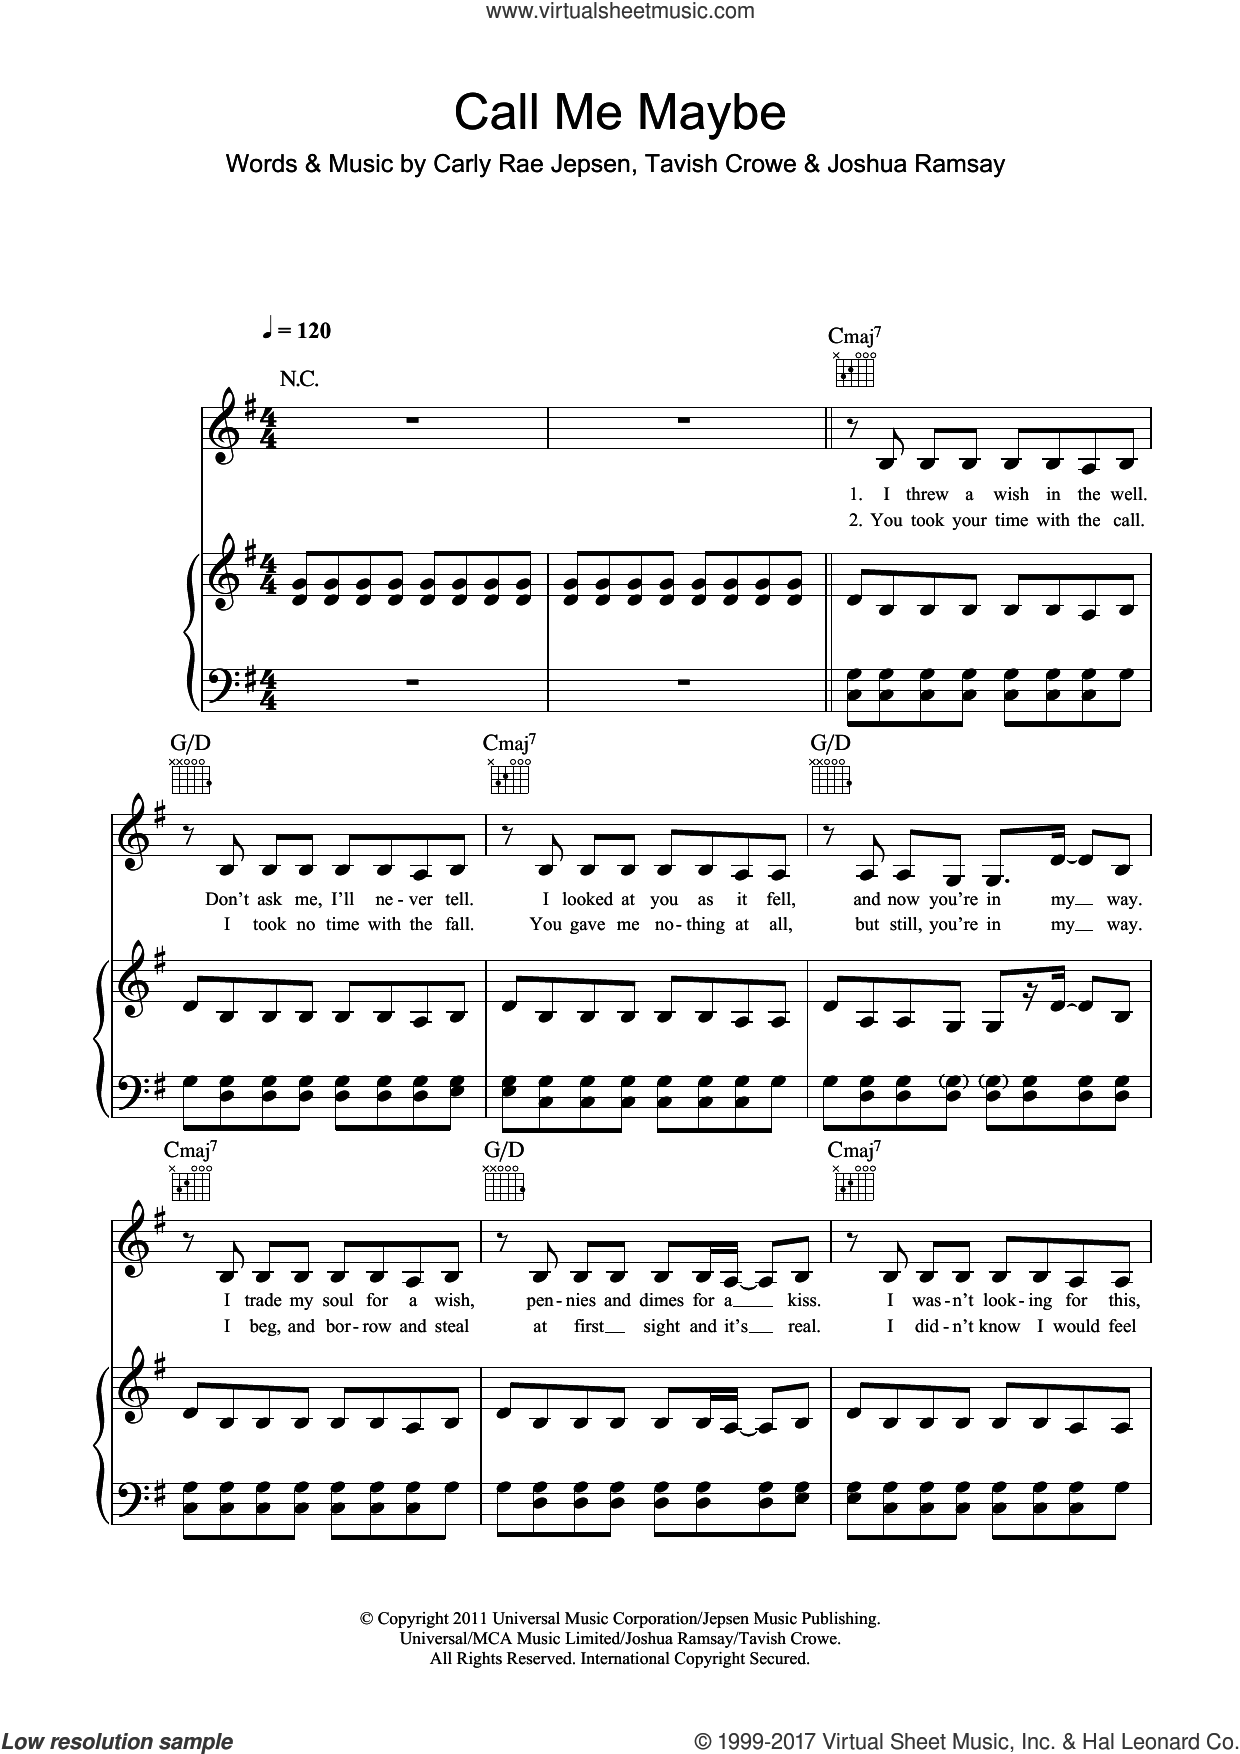 Call Me Maybe sheet music for voice, piano or guitar by Carly Rae Jepsen, Joshua Ramsay and Tavish Crowe, intermediate skill level